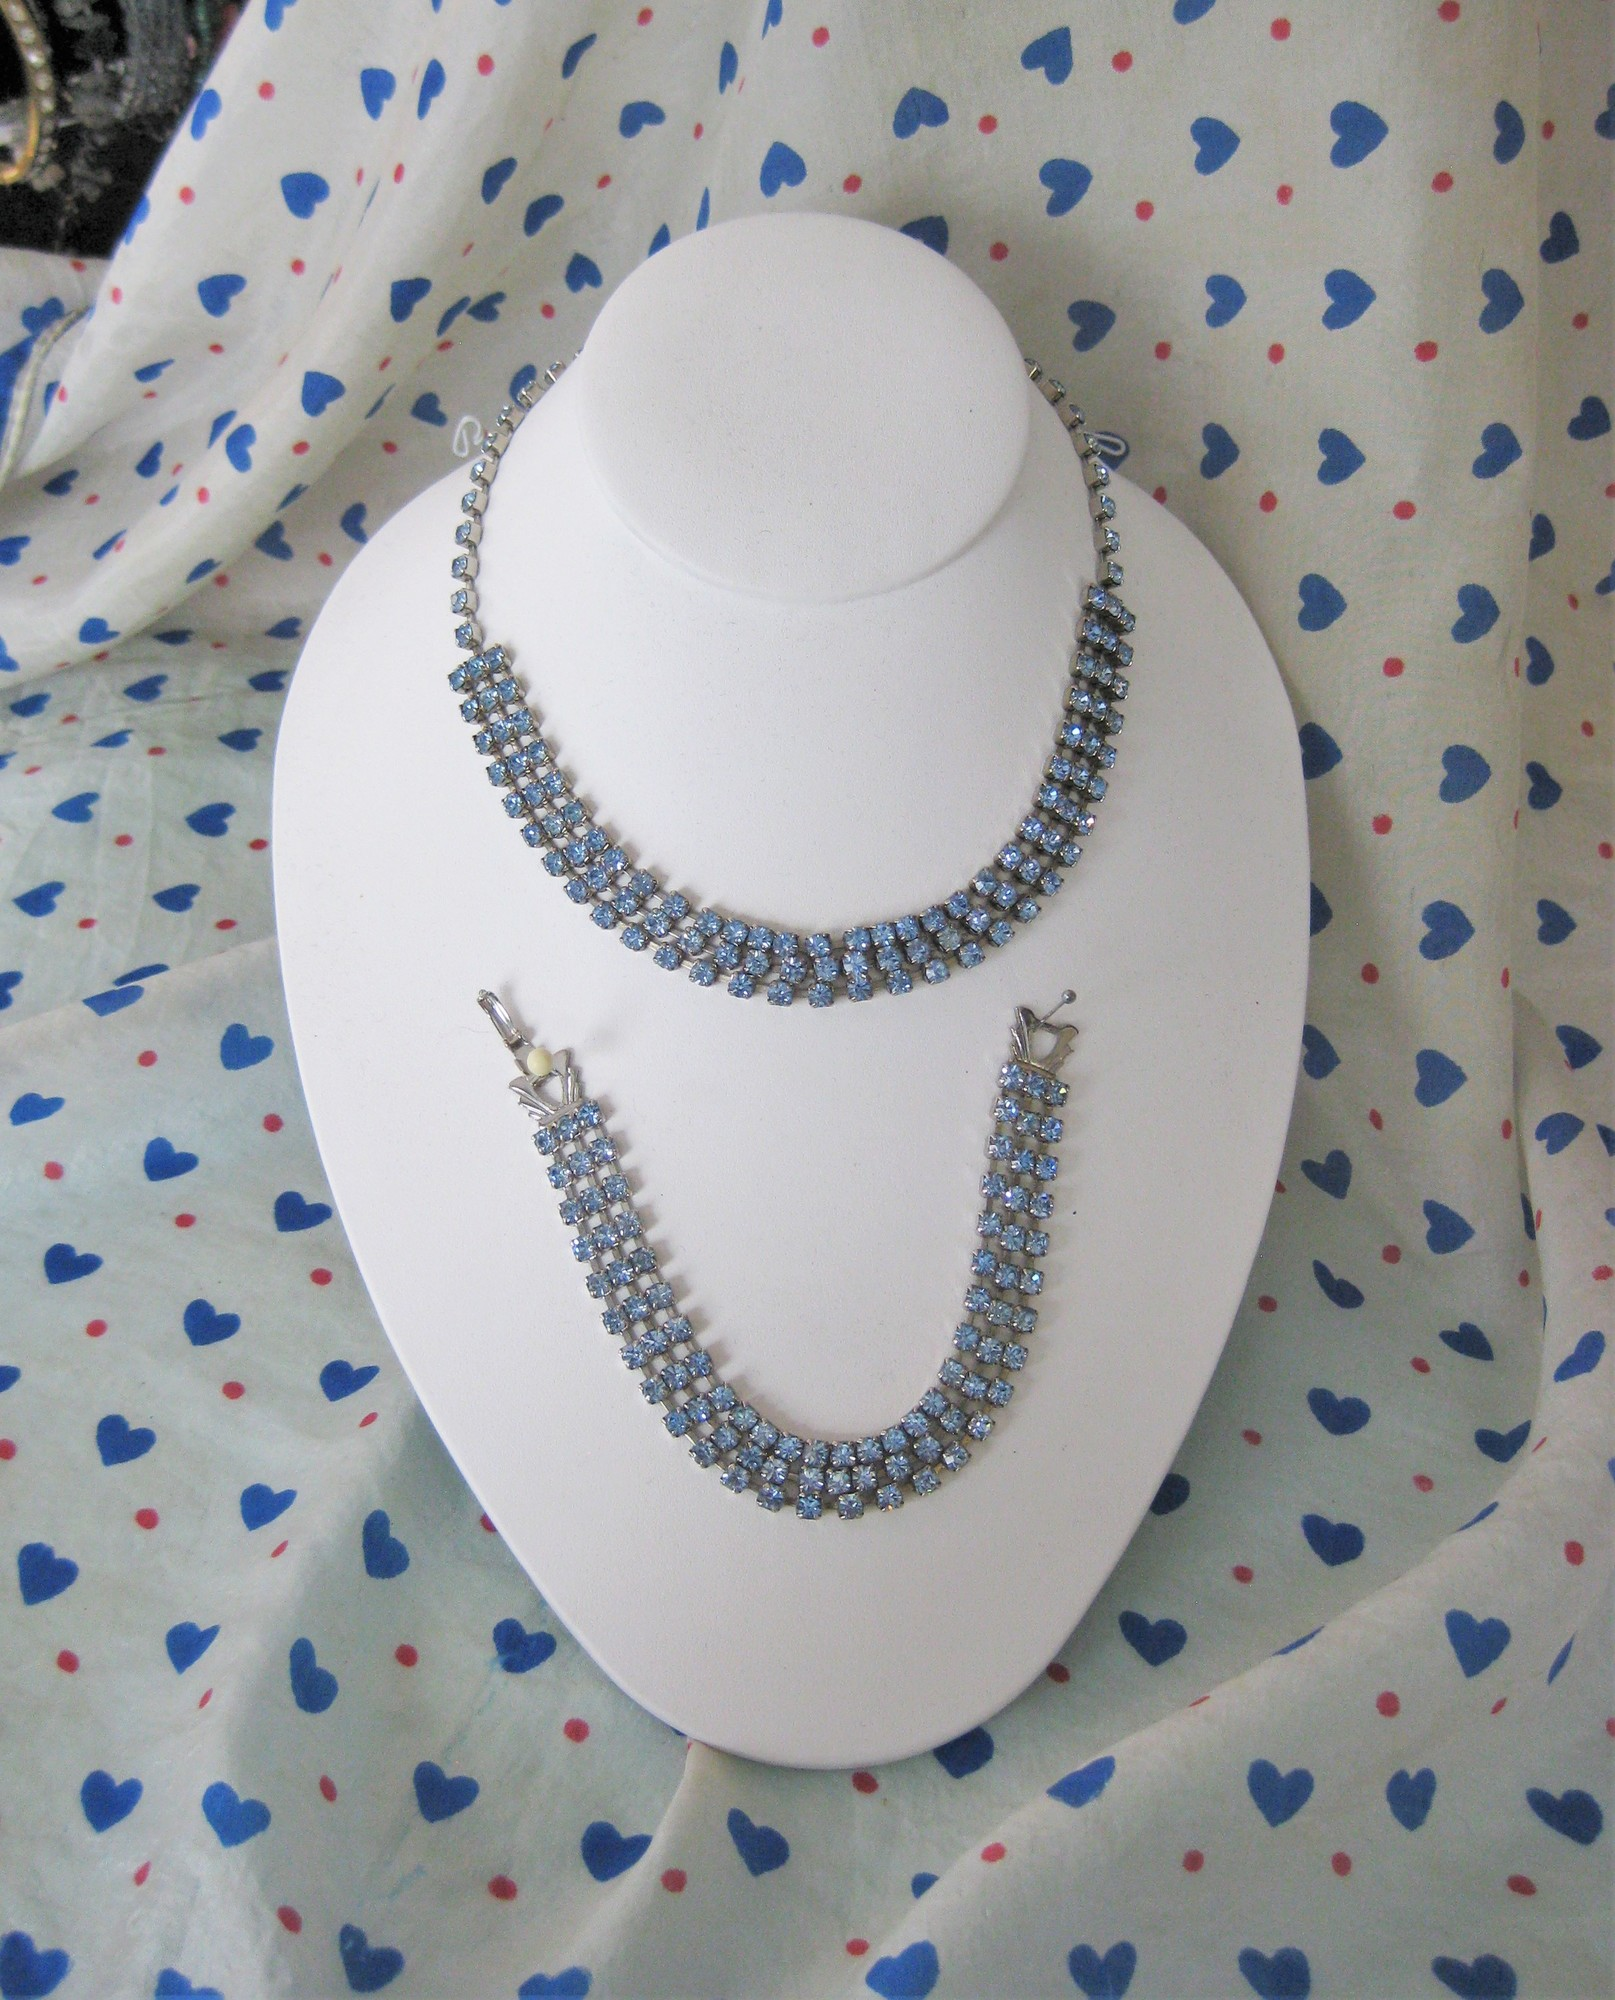 Pretty blue rhinestone set<br /> Choker length necklace and matching bracelet<br /> each has three rows of small square blue rhinestones in metal settings.<br /> necklace: 15.25in<br /> bracelet: 7in<br /> <br /> Thanks for looking!<br /> #36069